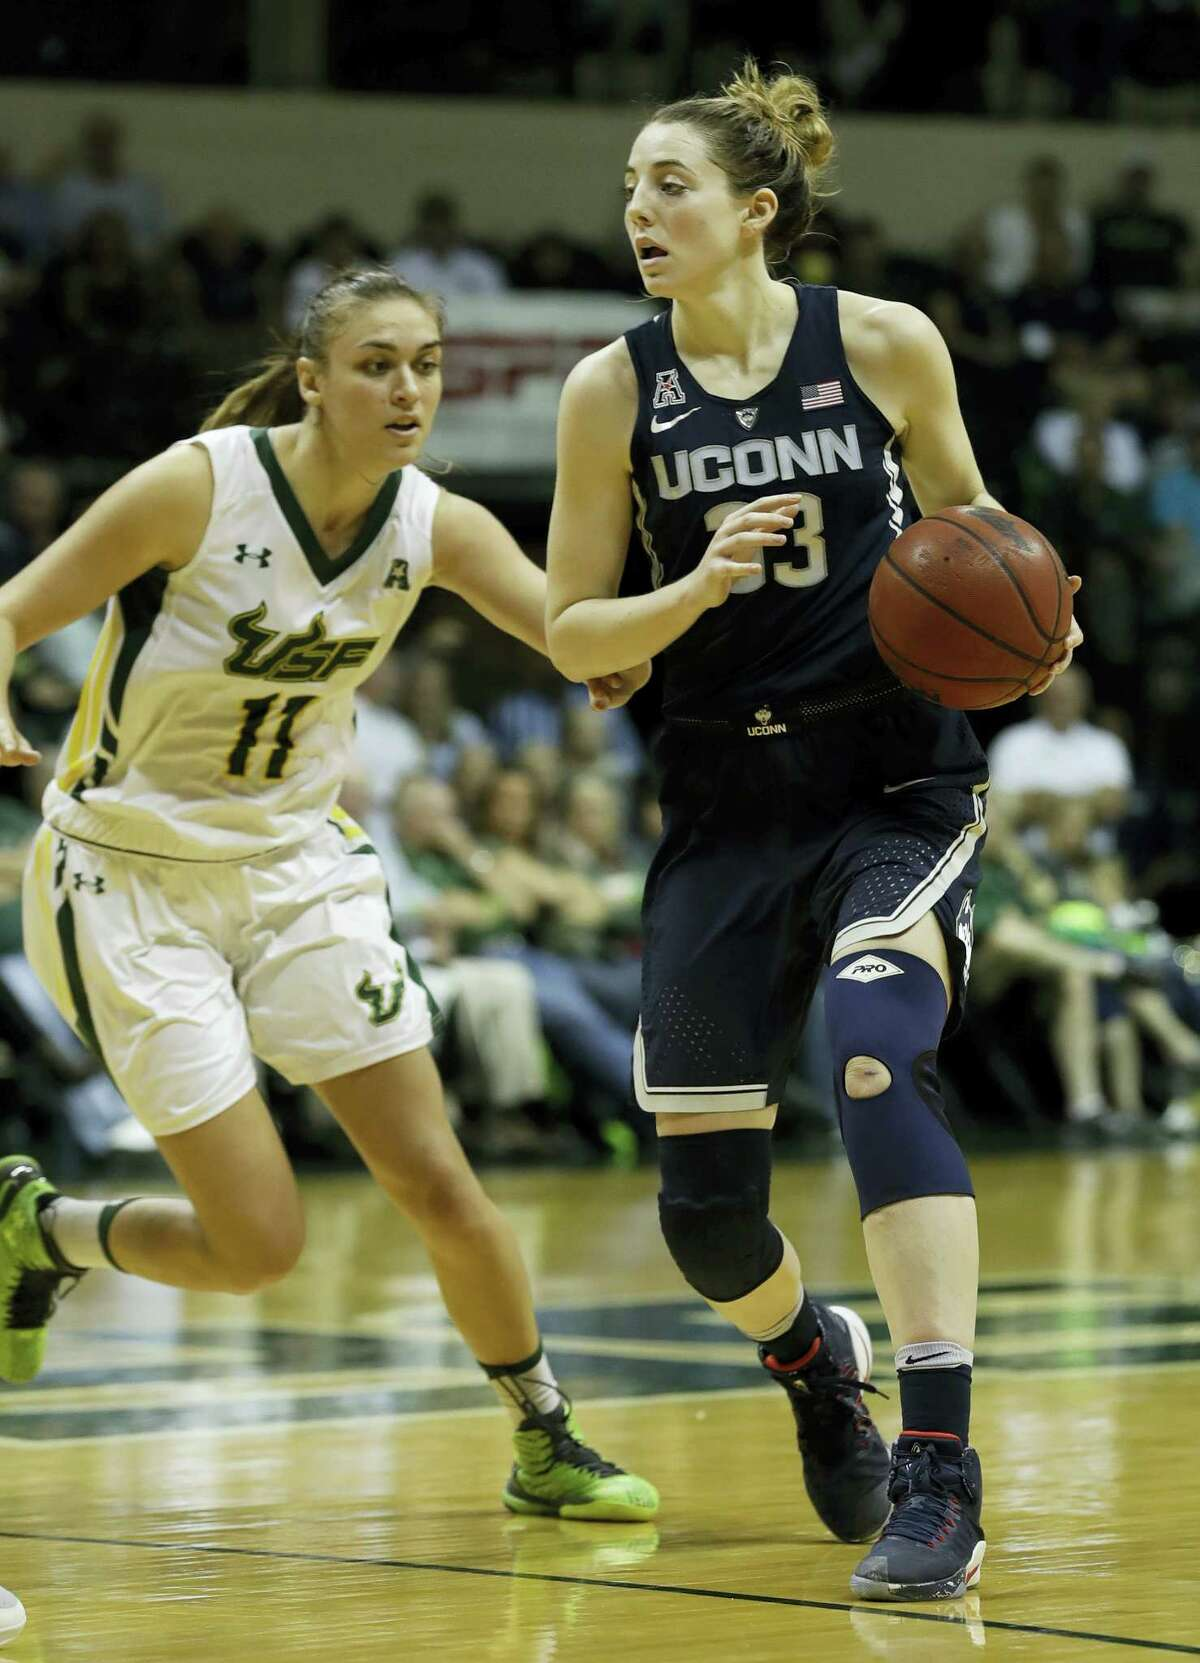 Connecticut guard/forward Katie Lou Samuelson (33) drives around South Florida guard/forward Ariadna Pujol (11) during the second half of an NCAA women's college basketball game Monday in Tampa, Fla. UConn won the game 96-68.